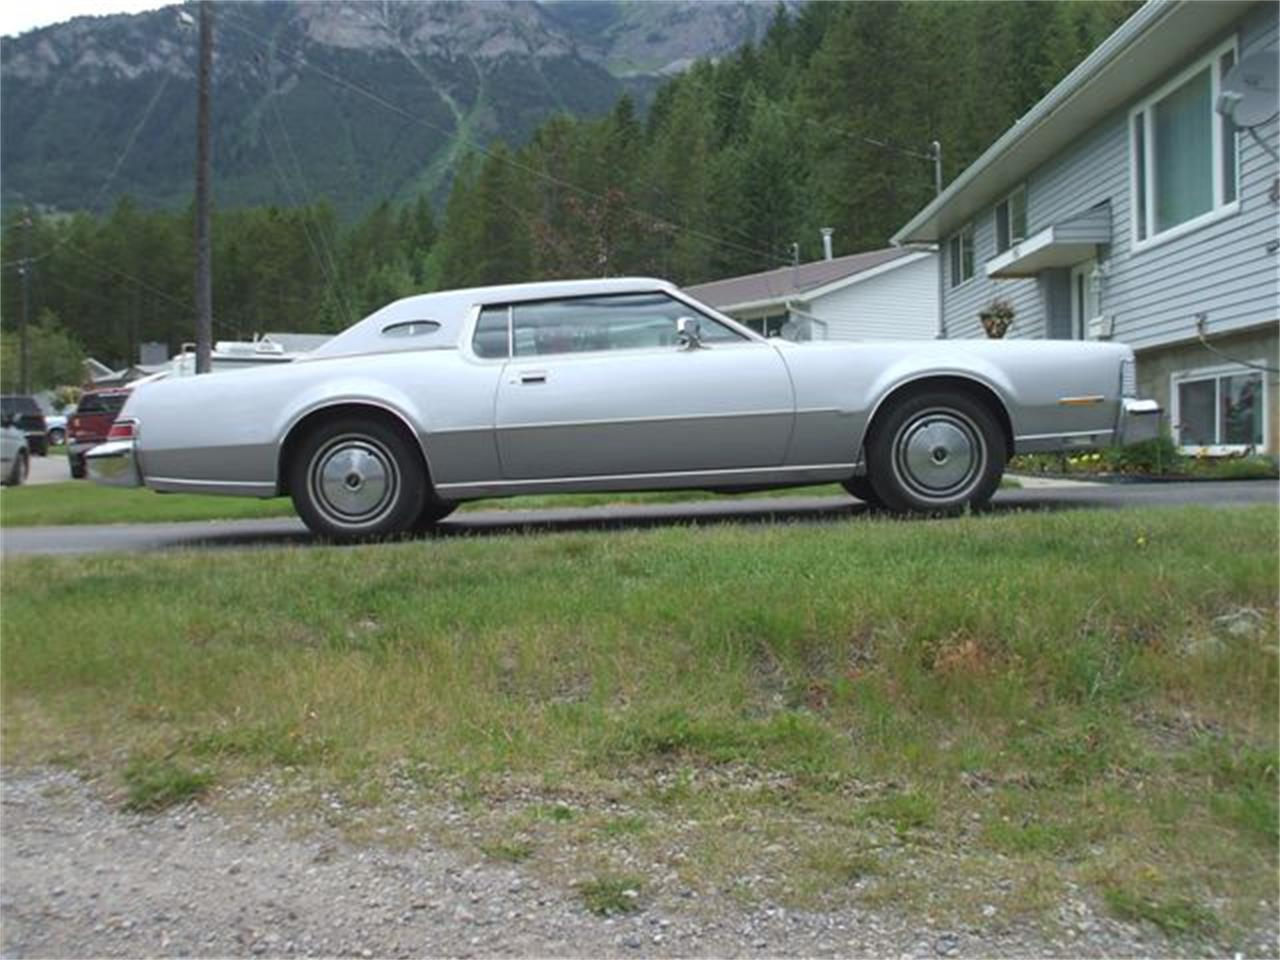 Large Picture of '74 Continental Mark IV - $7,600.00 - E23Q